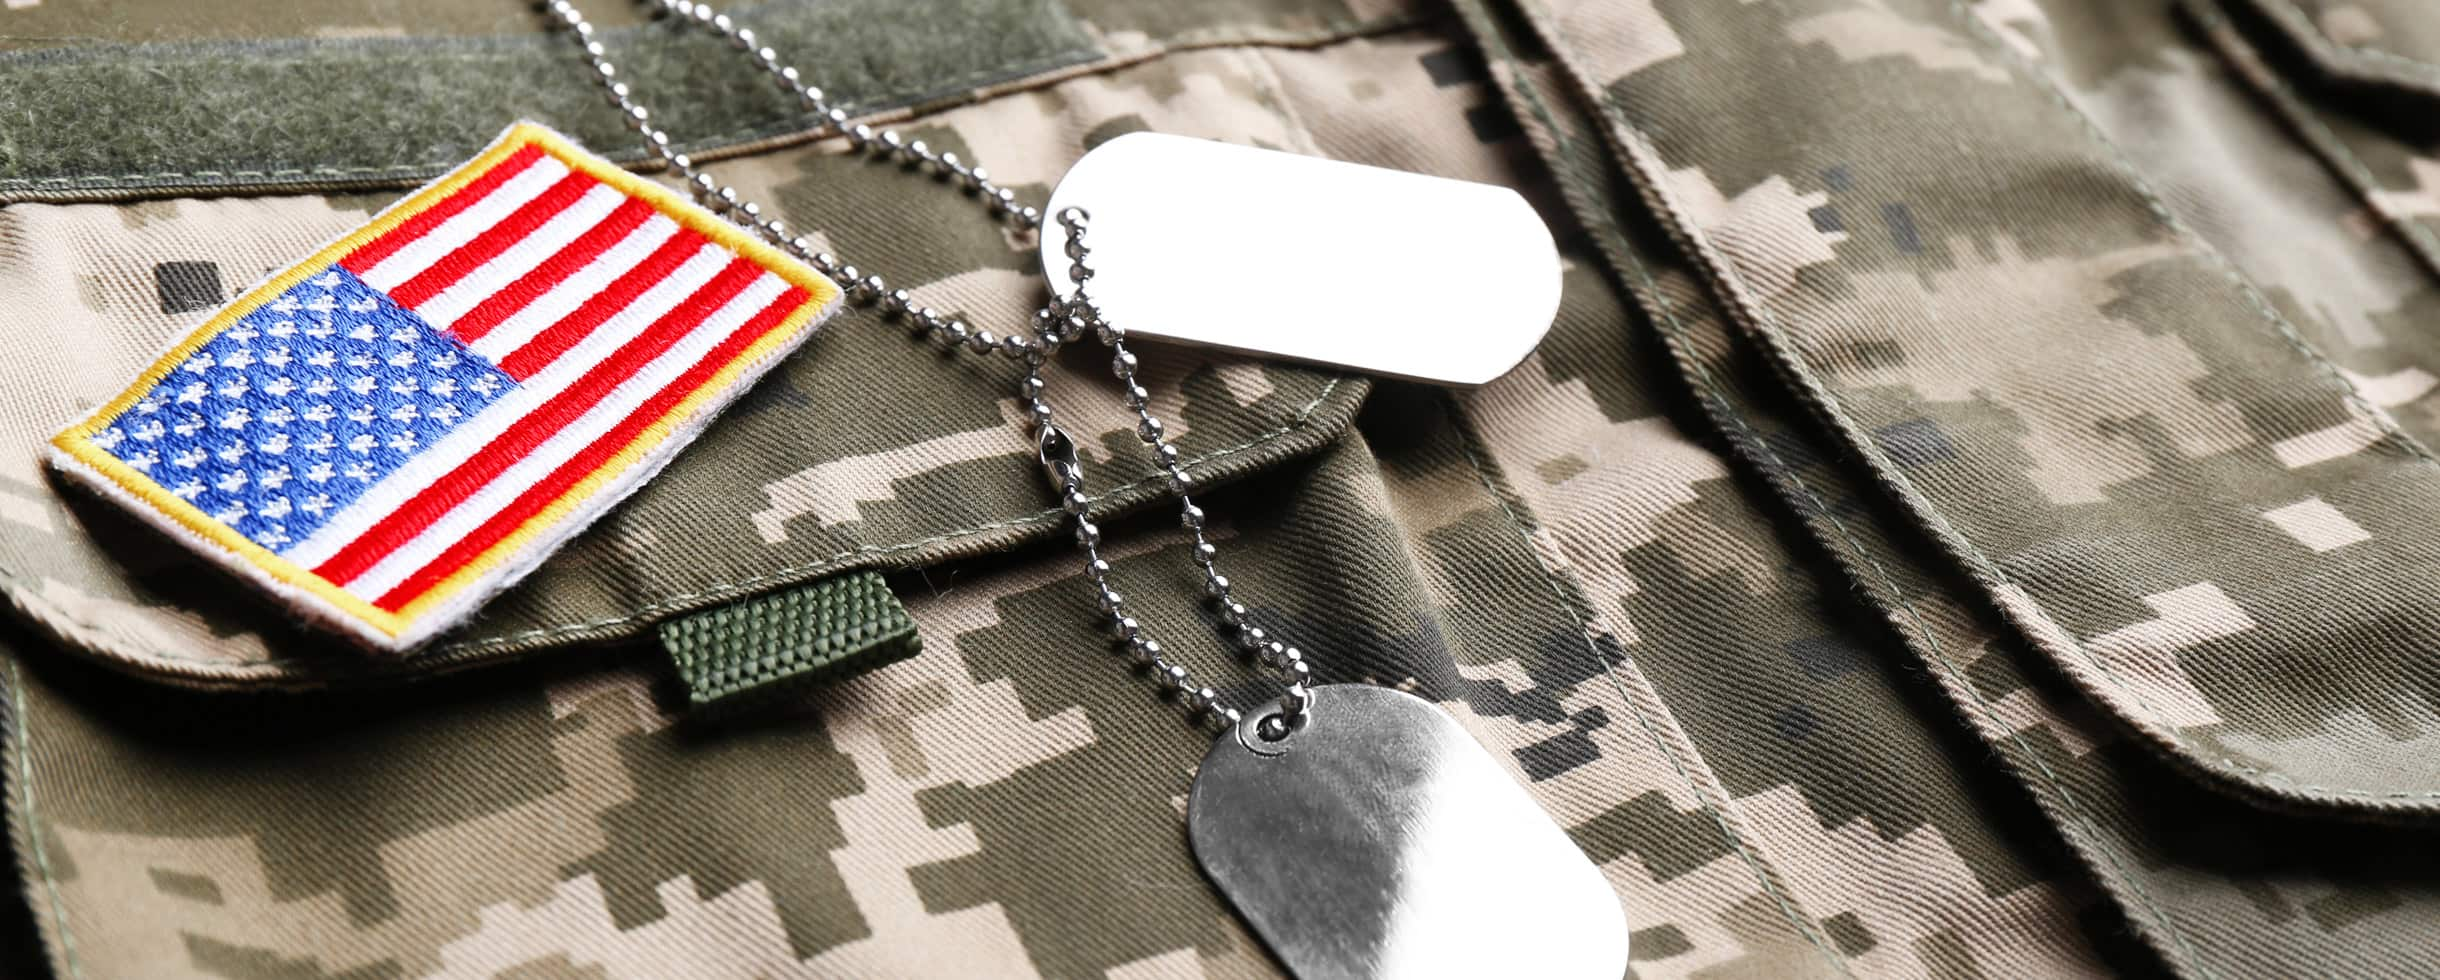 Military Tags and Flag on Jacket